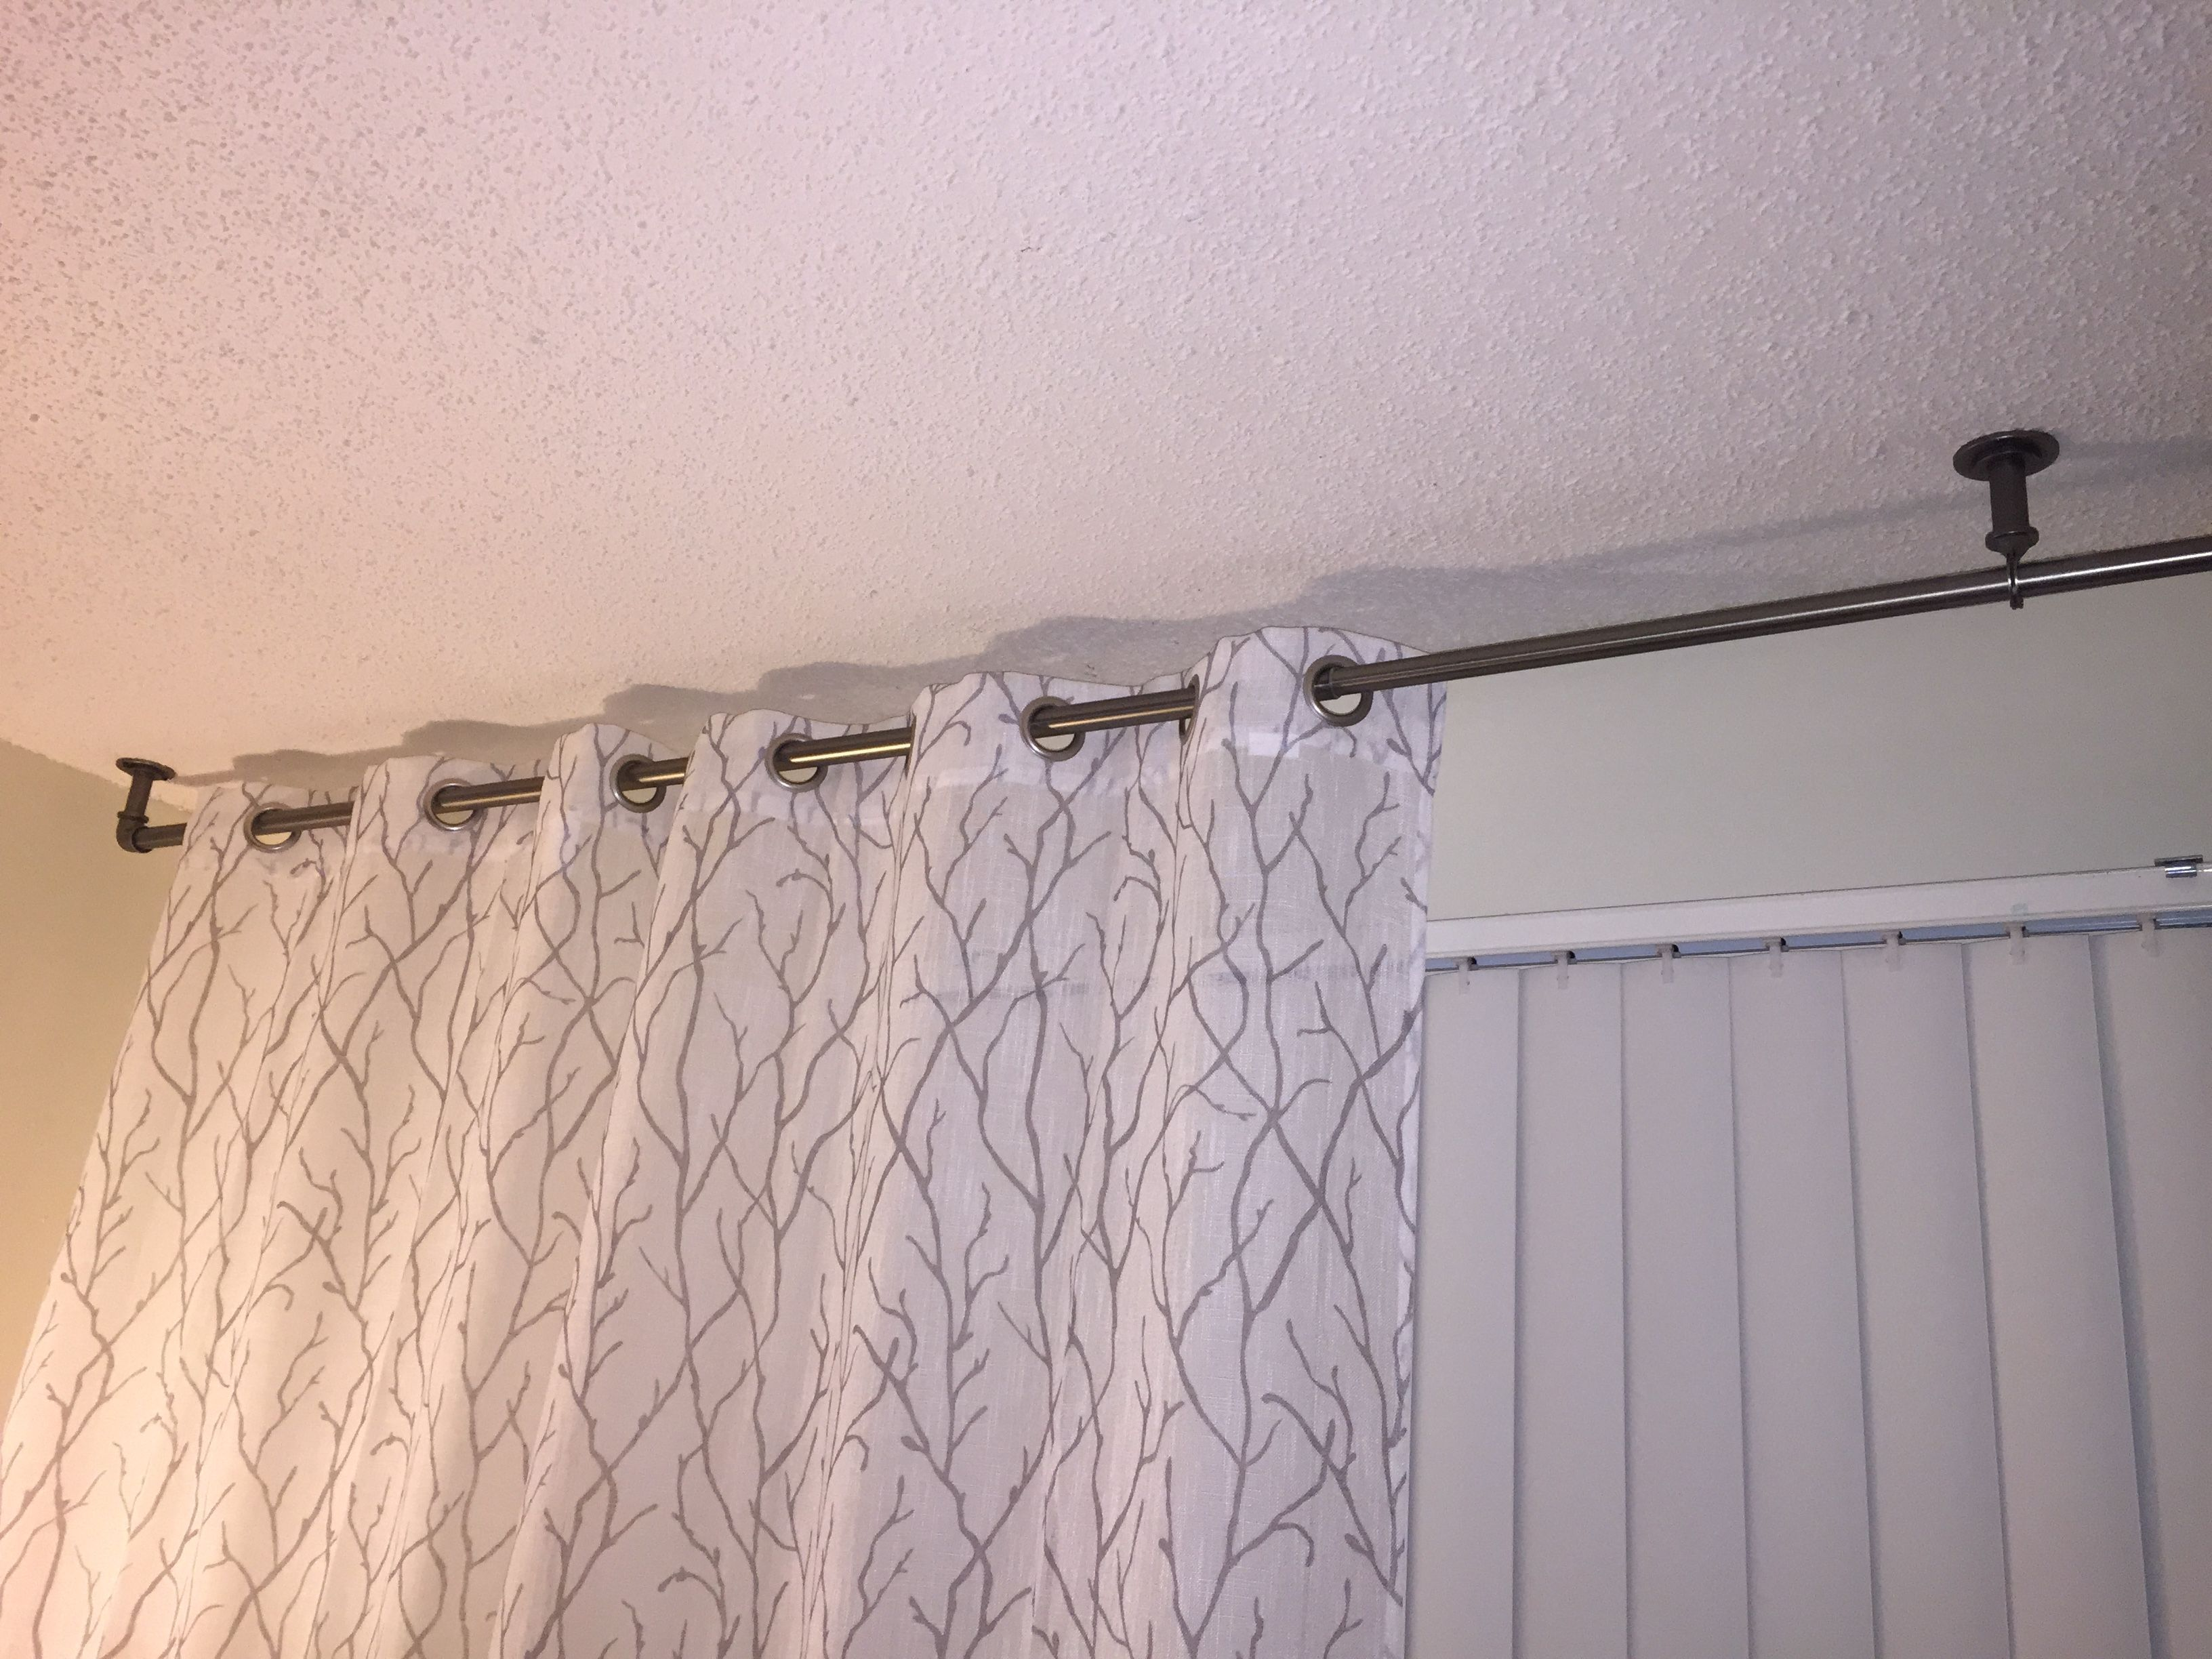 Need Drapes To Hang Over Vertical Blinds Mount Rod To Ceiling